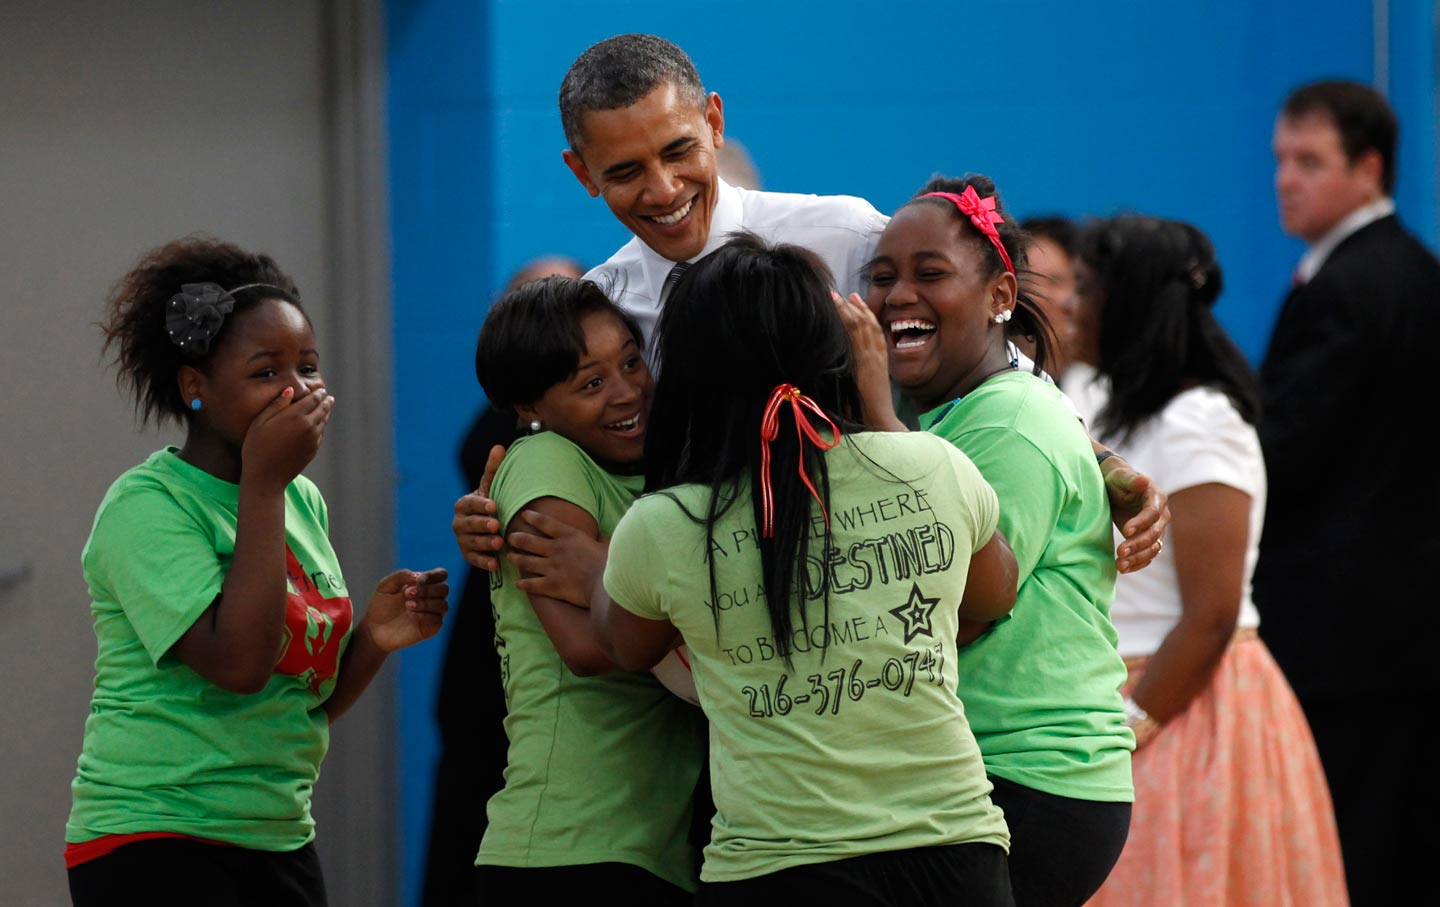 President Obama at Boys and Girls Club